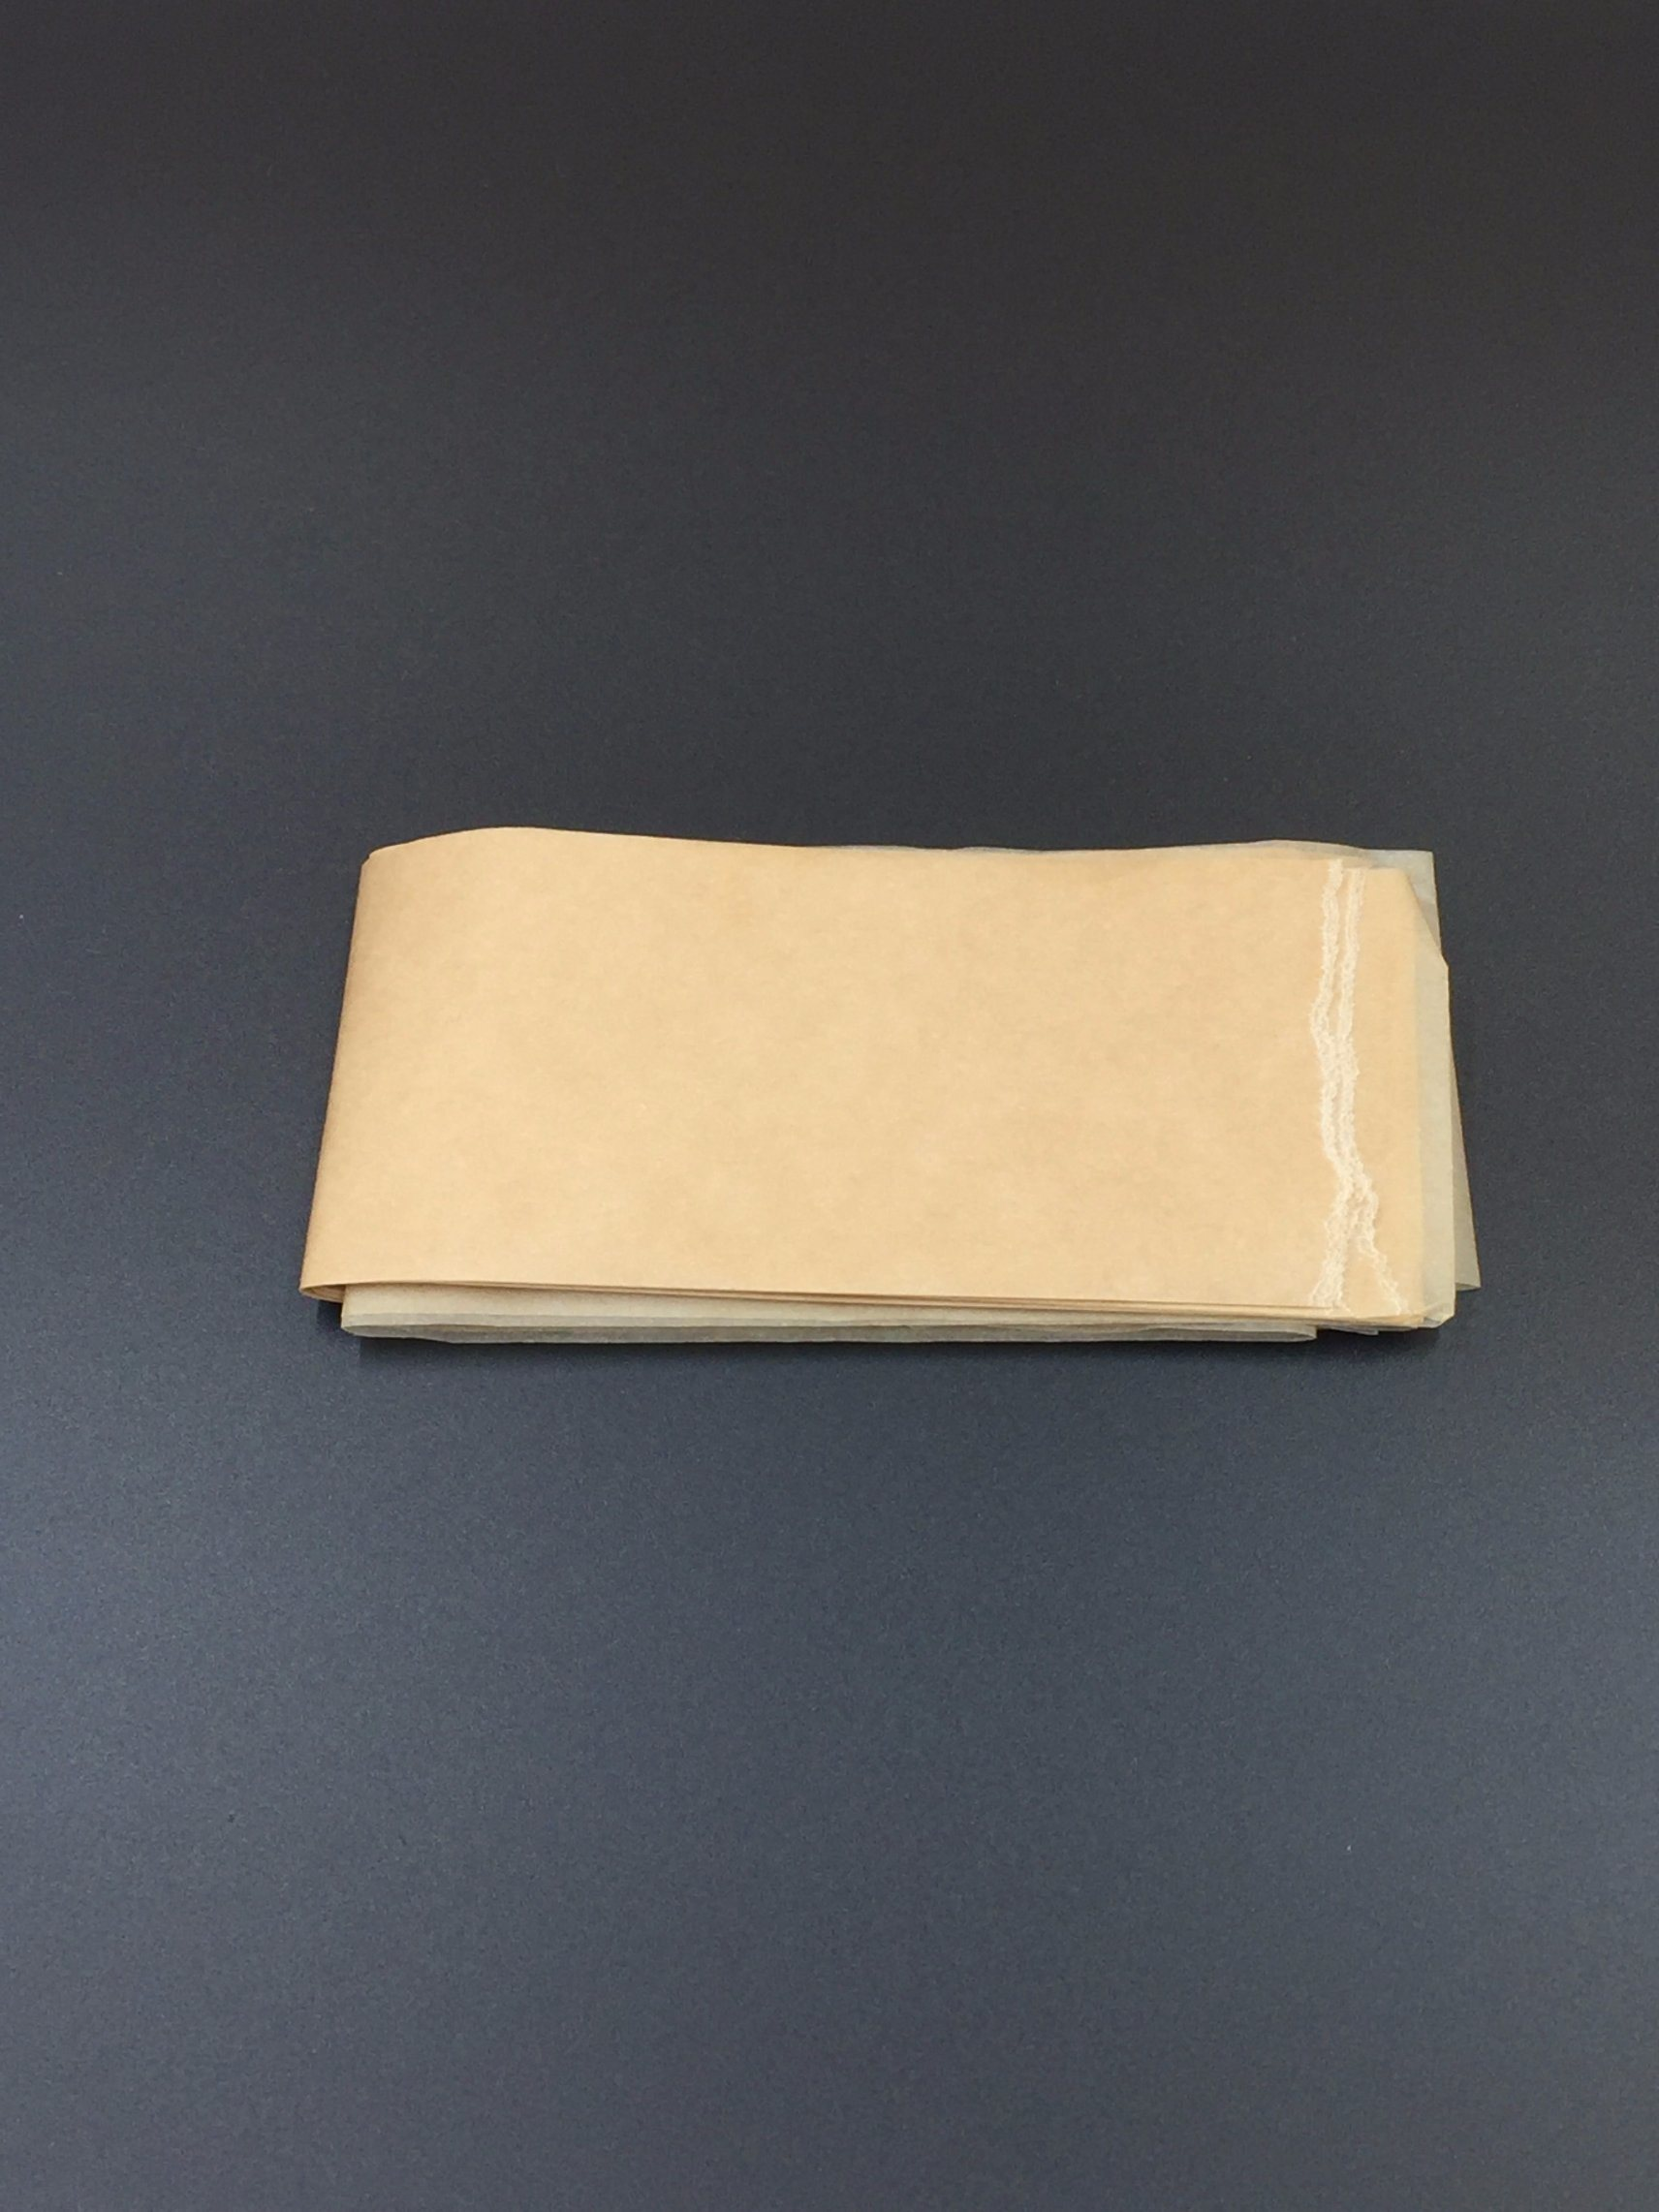 12.5GSM Brown Color Cigarette Paper with 1 1/4 Size